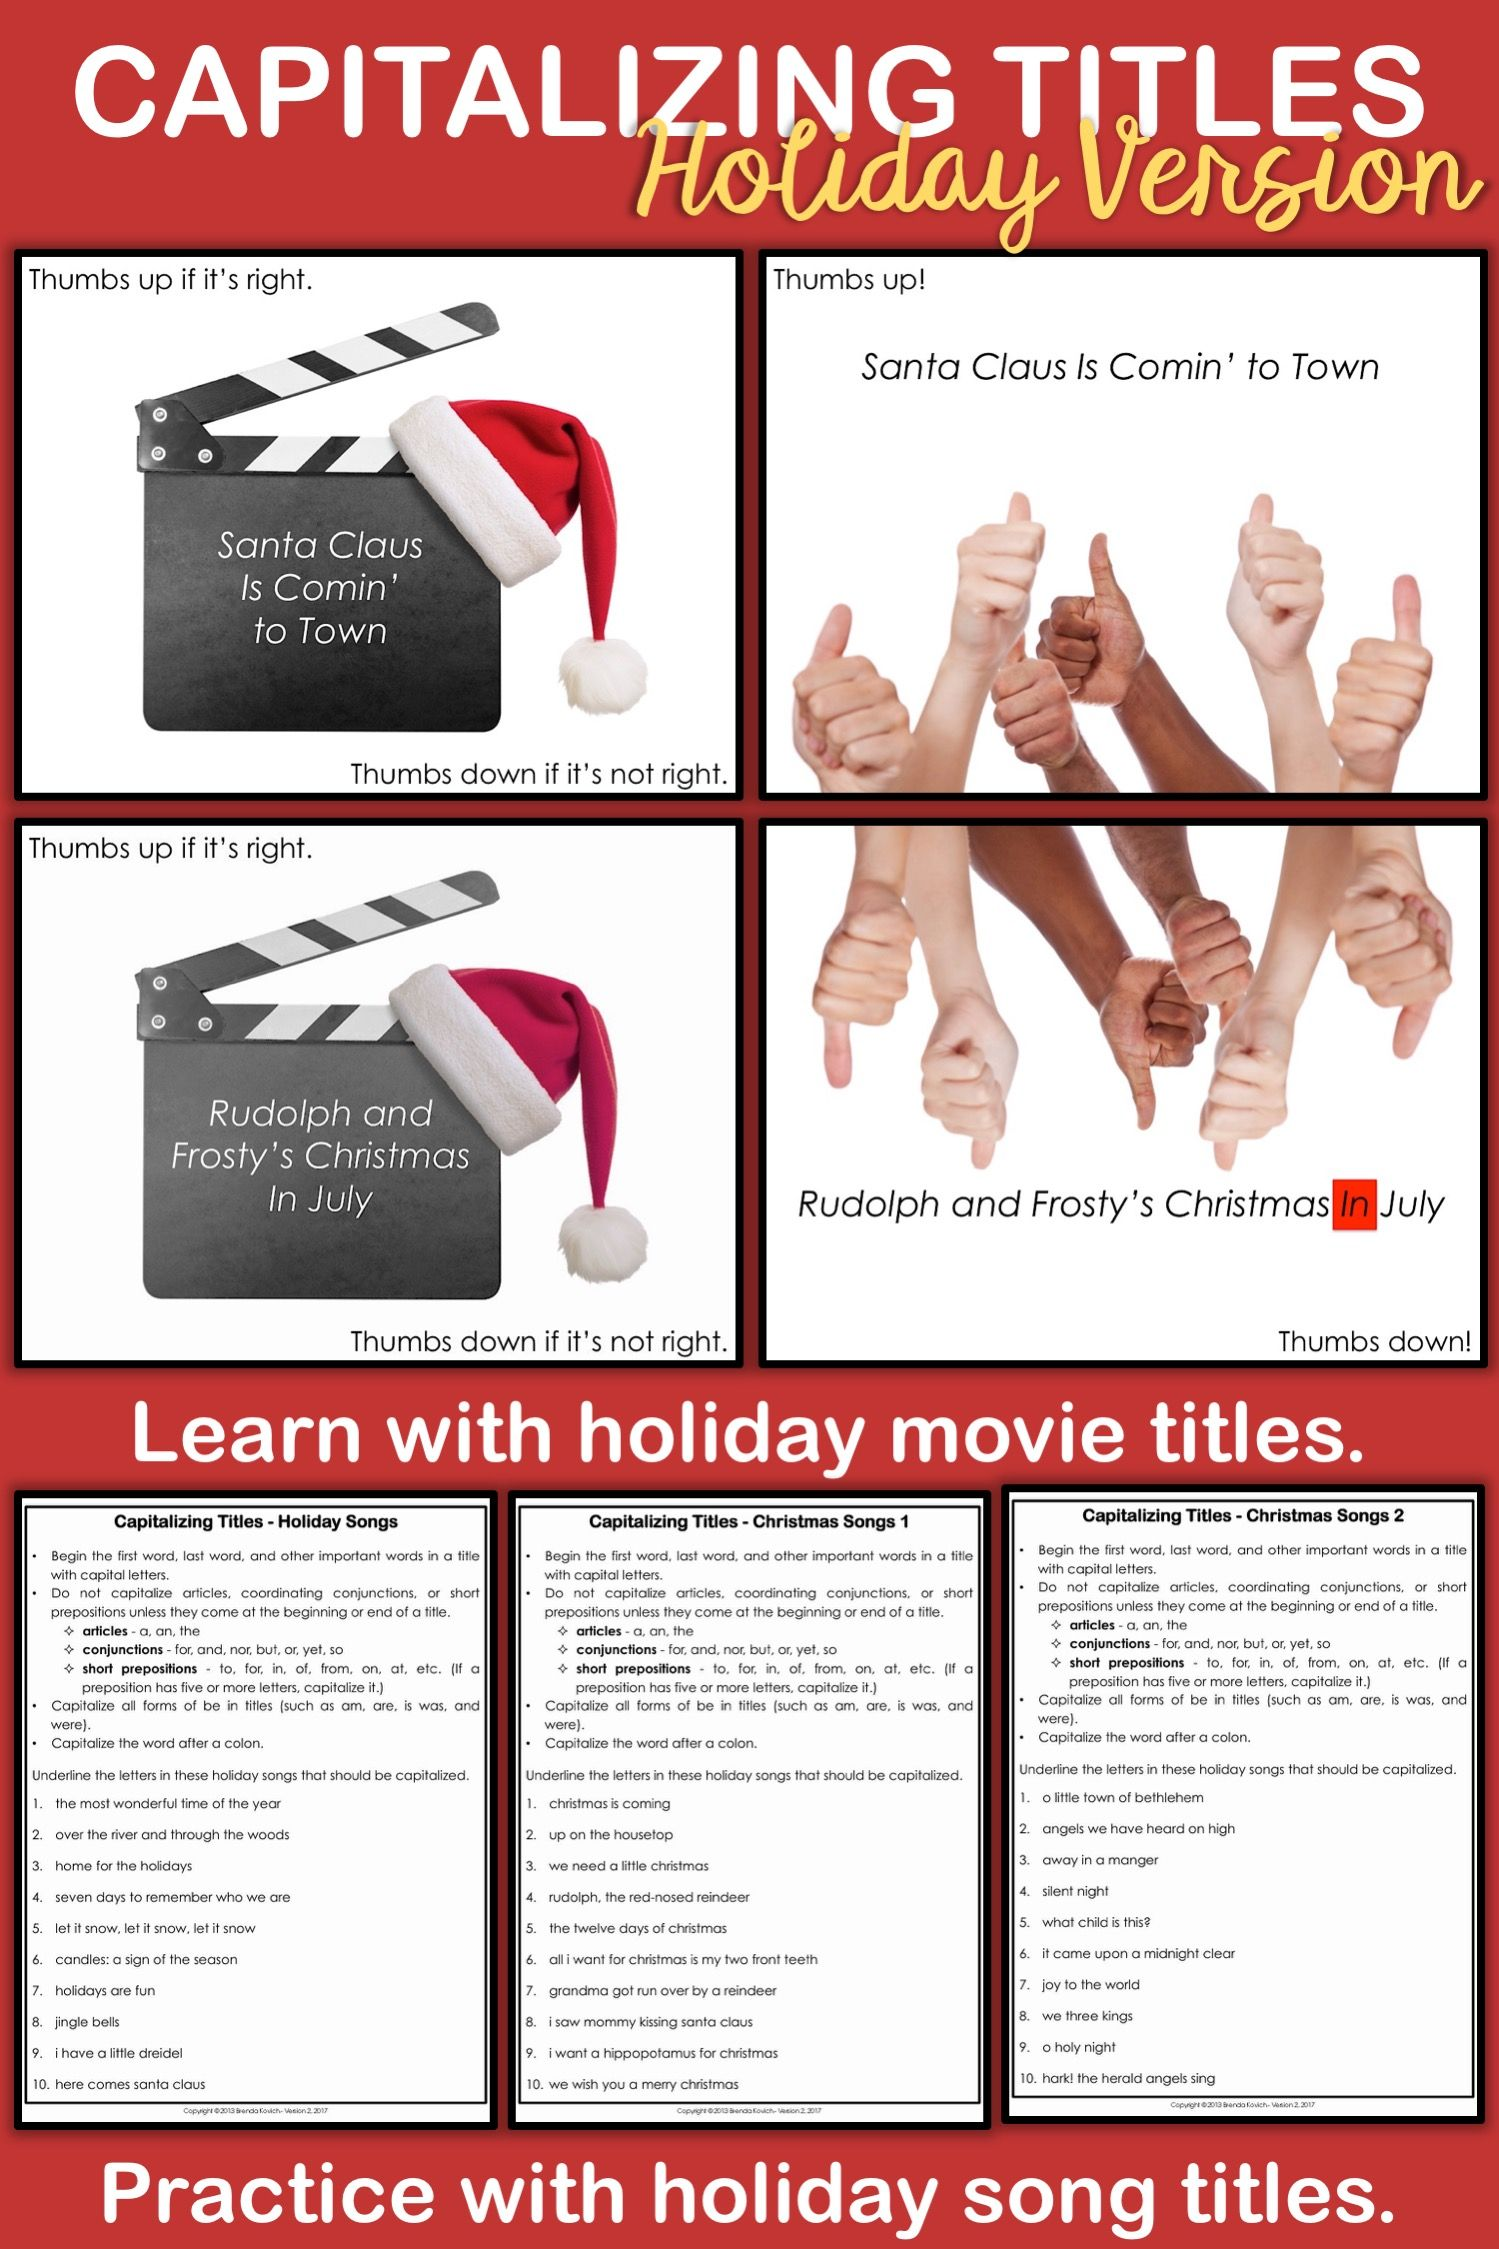 medium resolution of Capitalizing Titles - Holiday Version   Capitalization activities